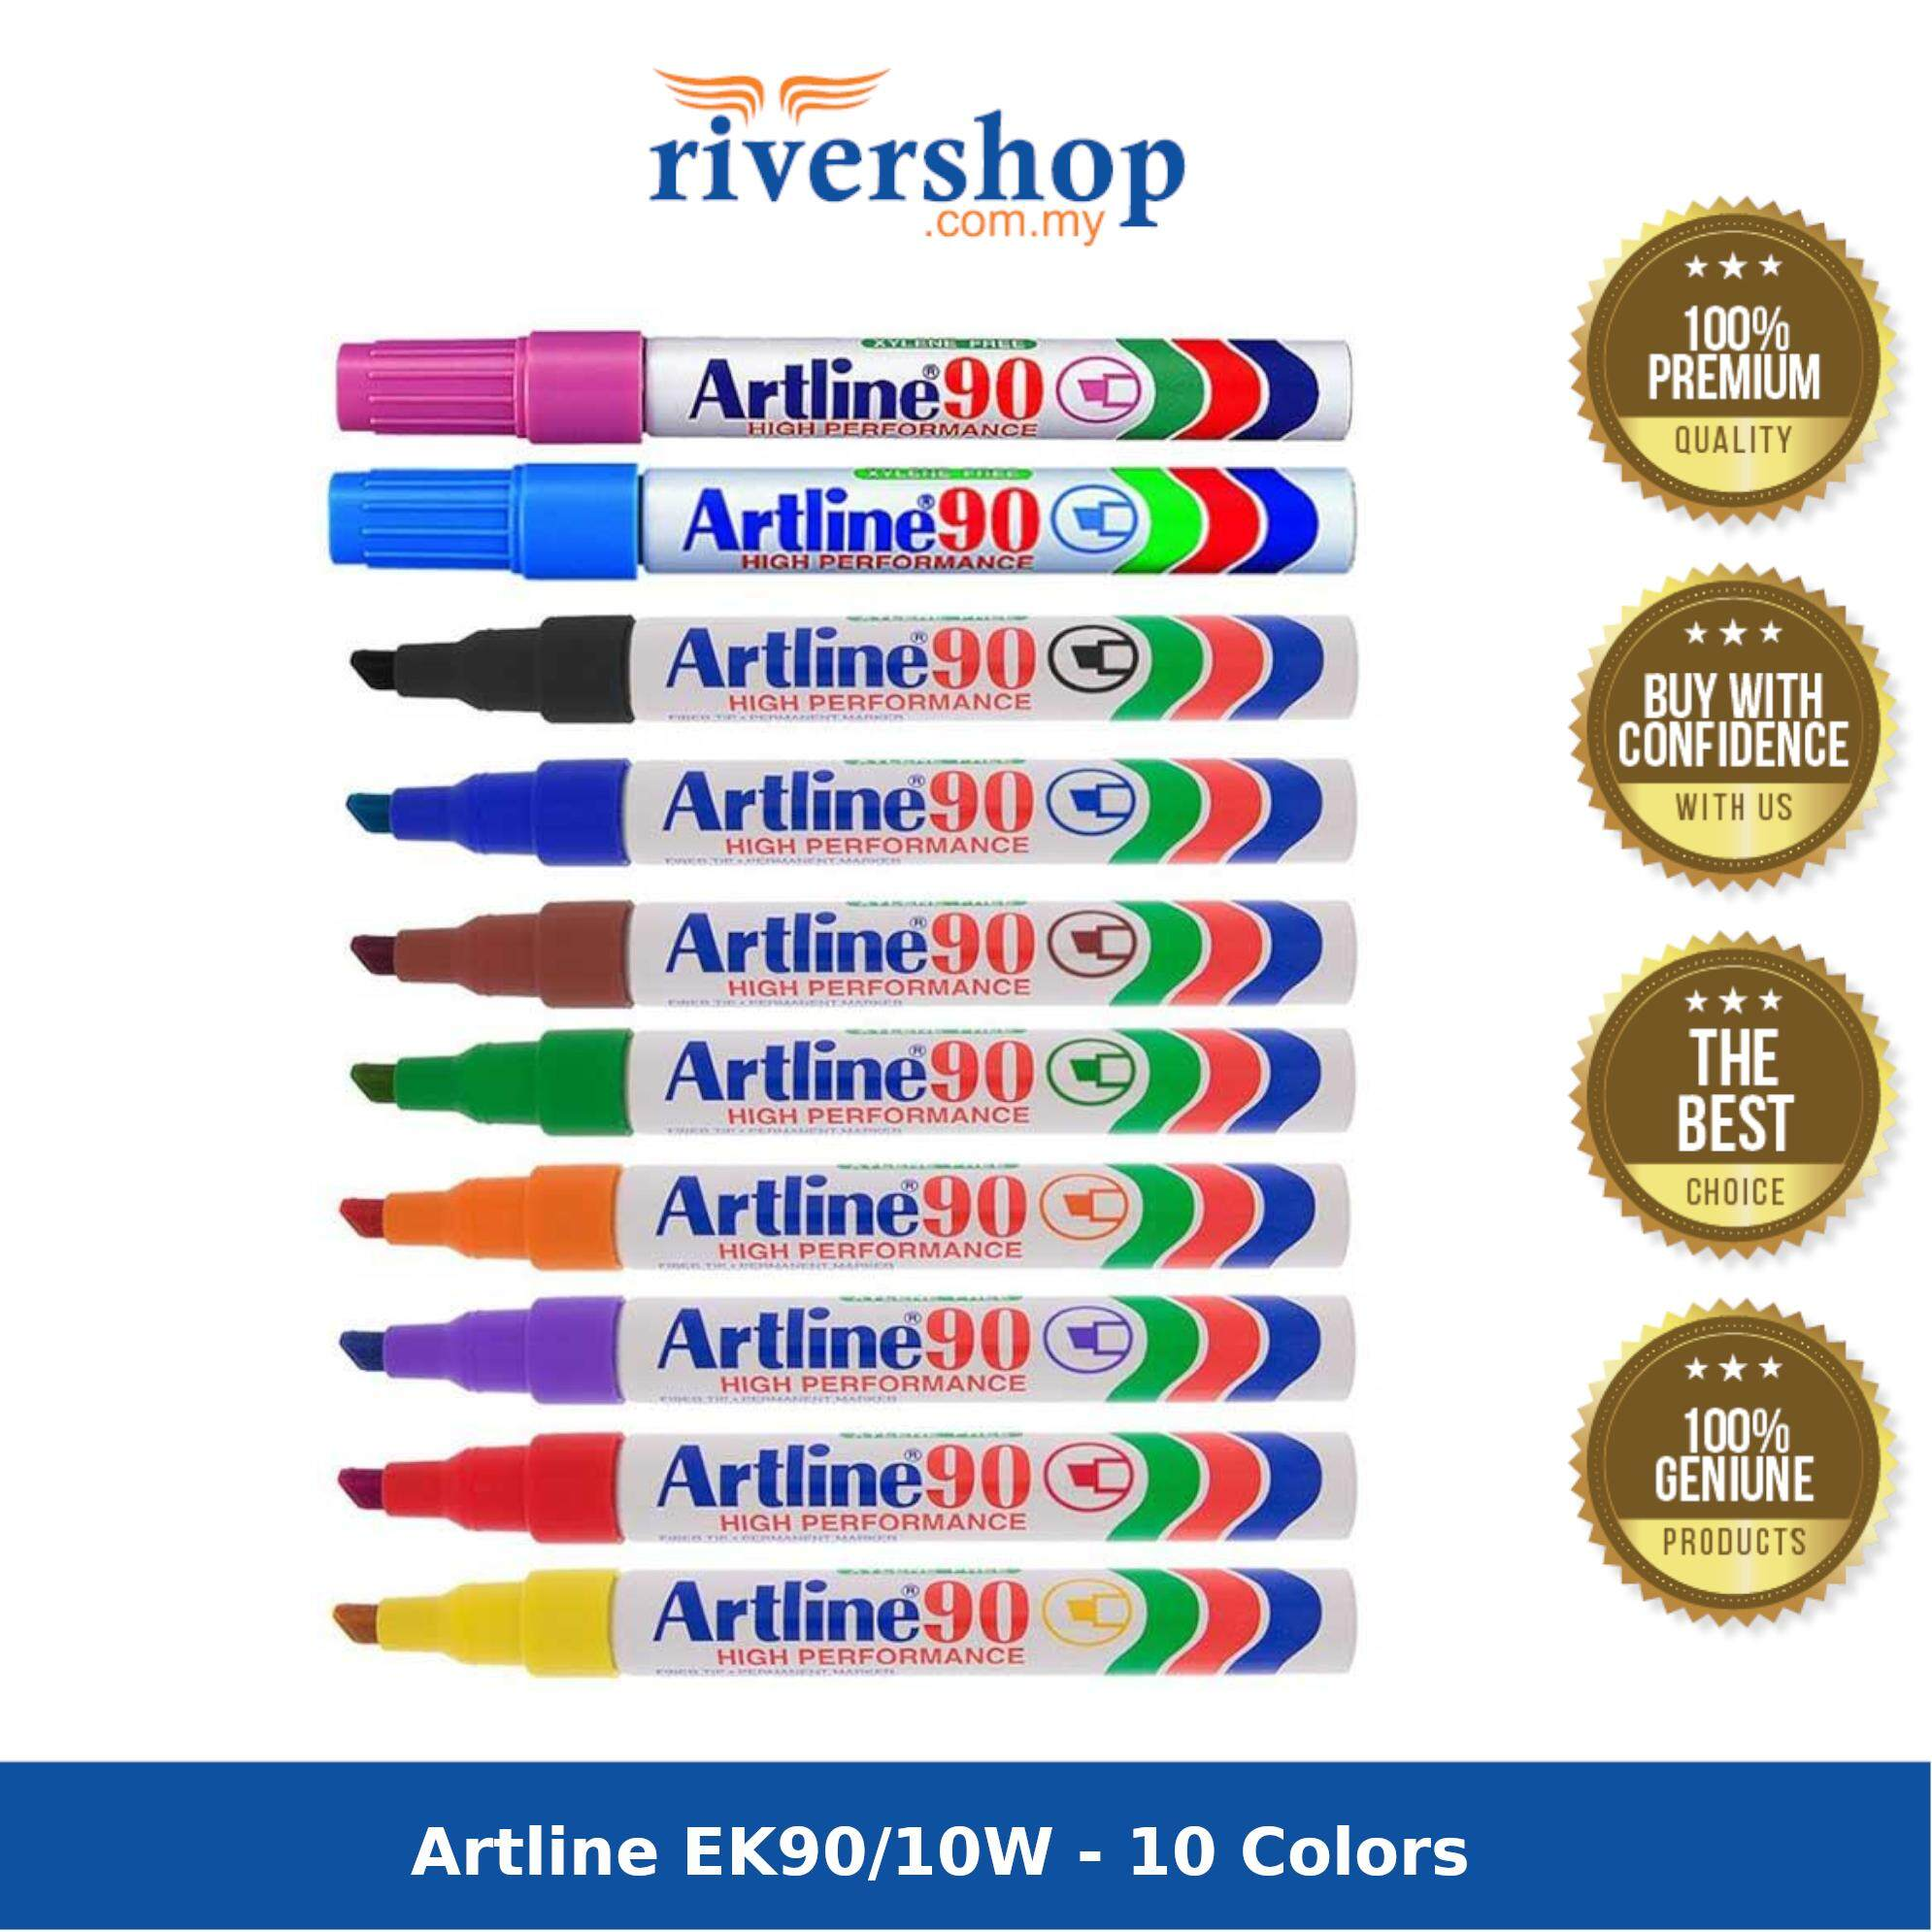 Artline EK90/10W - 10 Colors